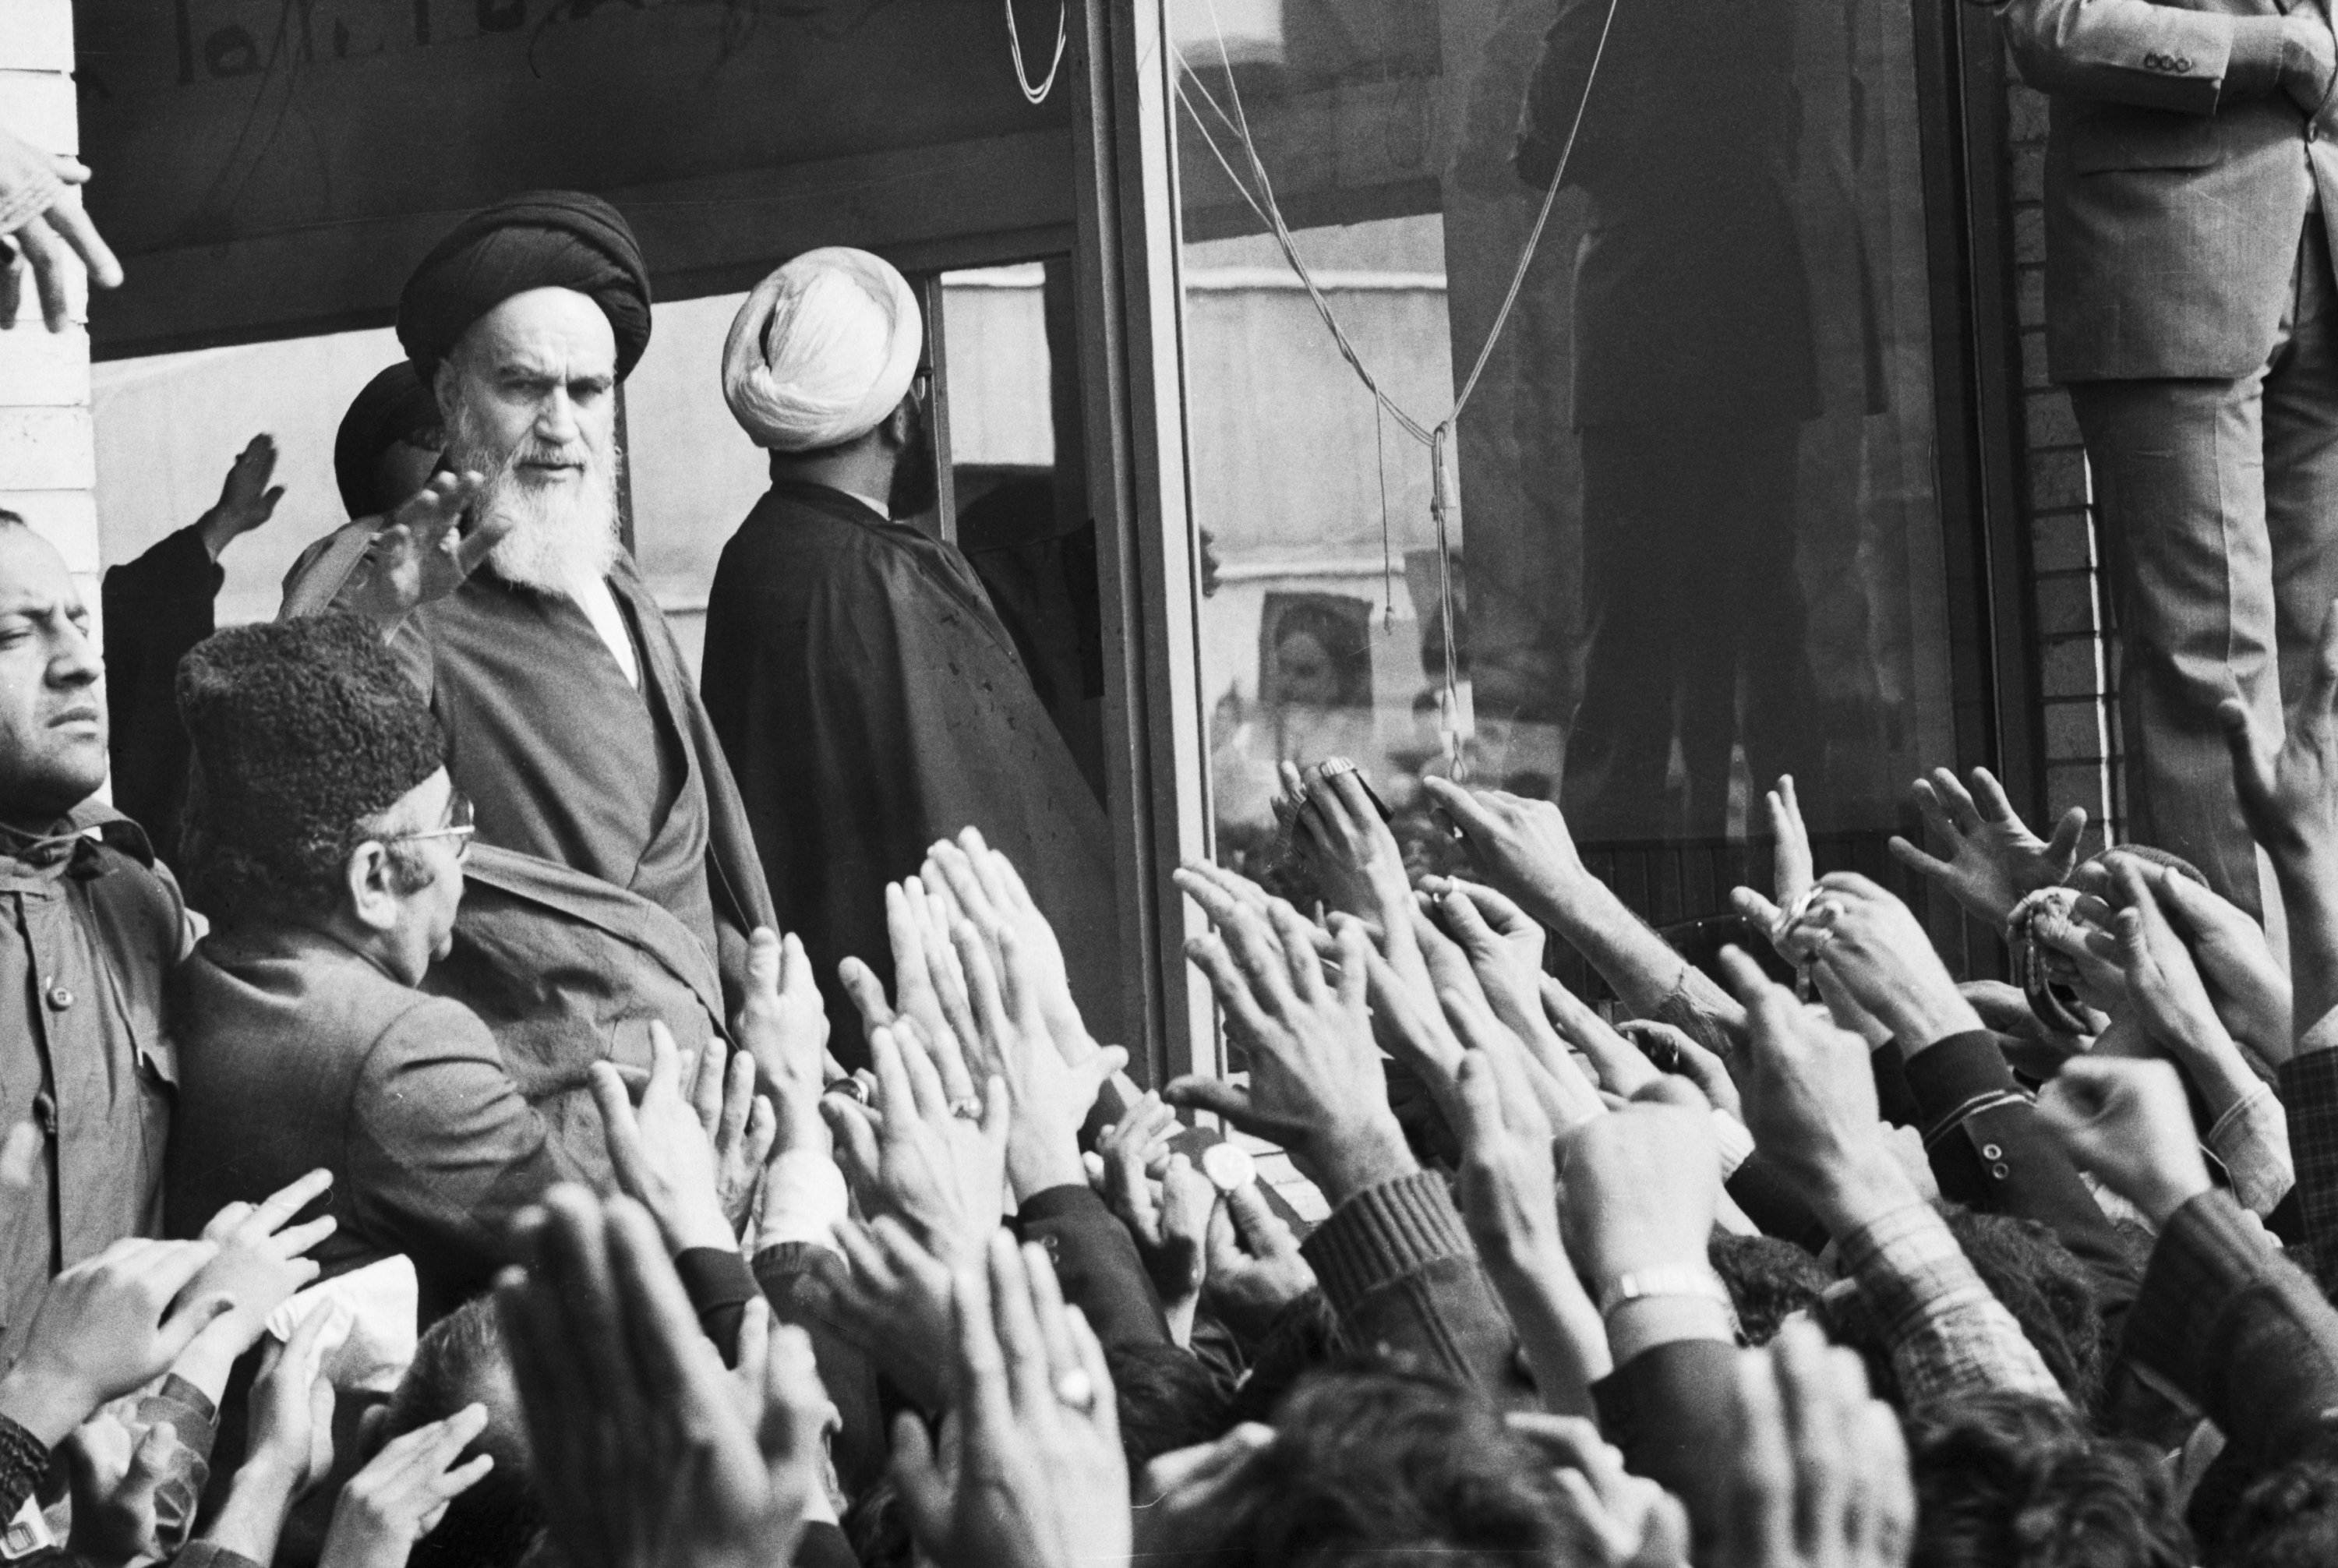 Ayatollah Khomeini waves to a crowd of supporters from the window of his Tehran home, Iran, Feb. 7, 1979. (Photo by Getty Images)